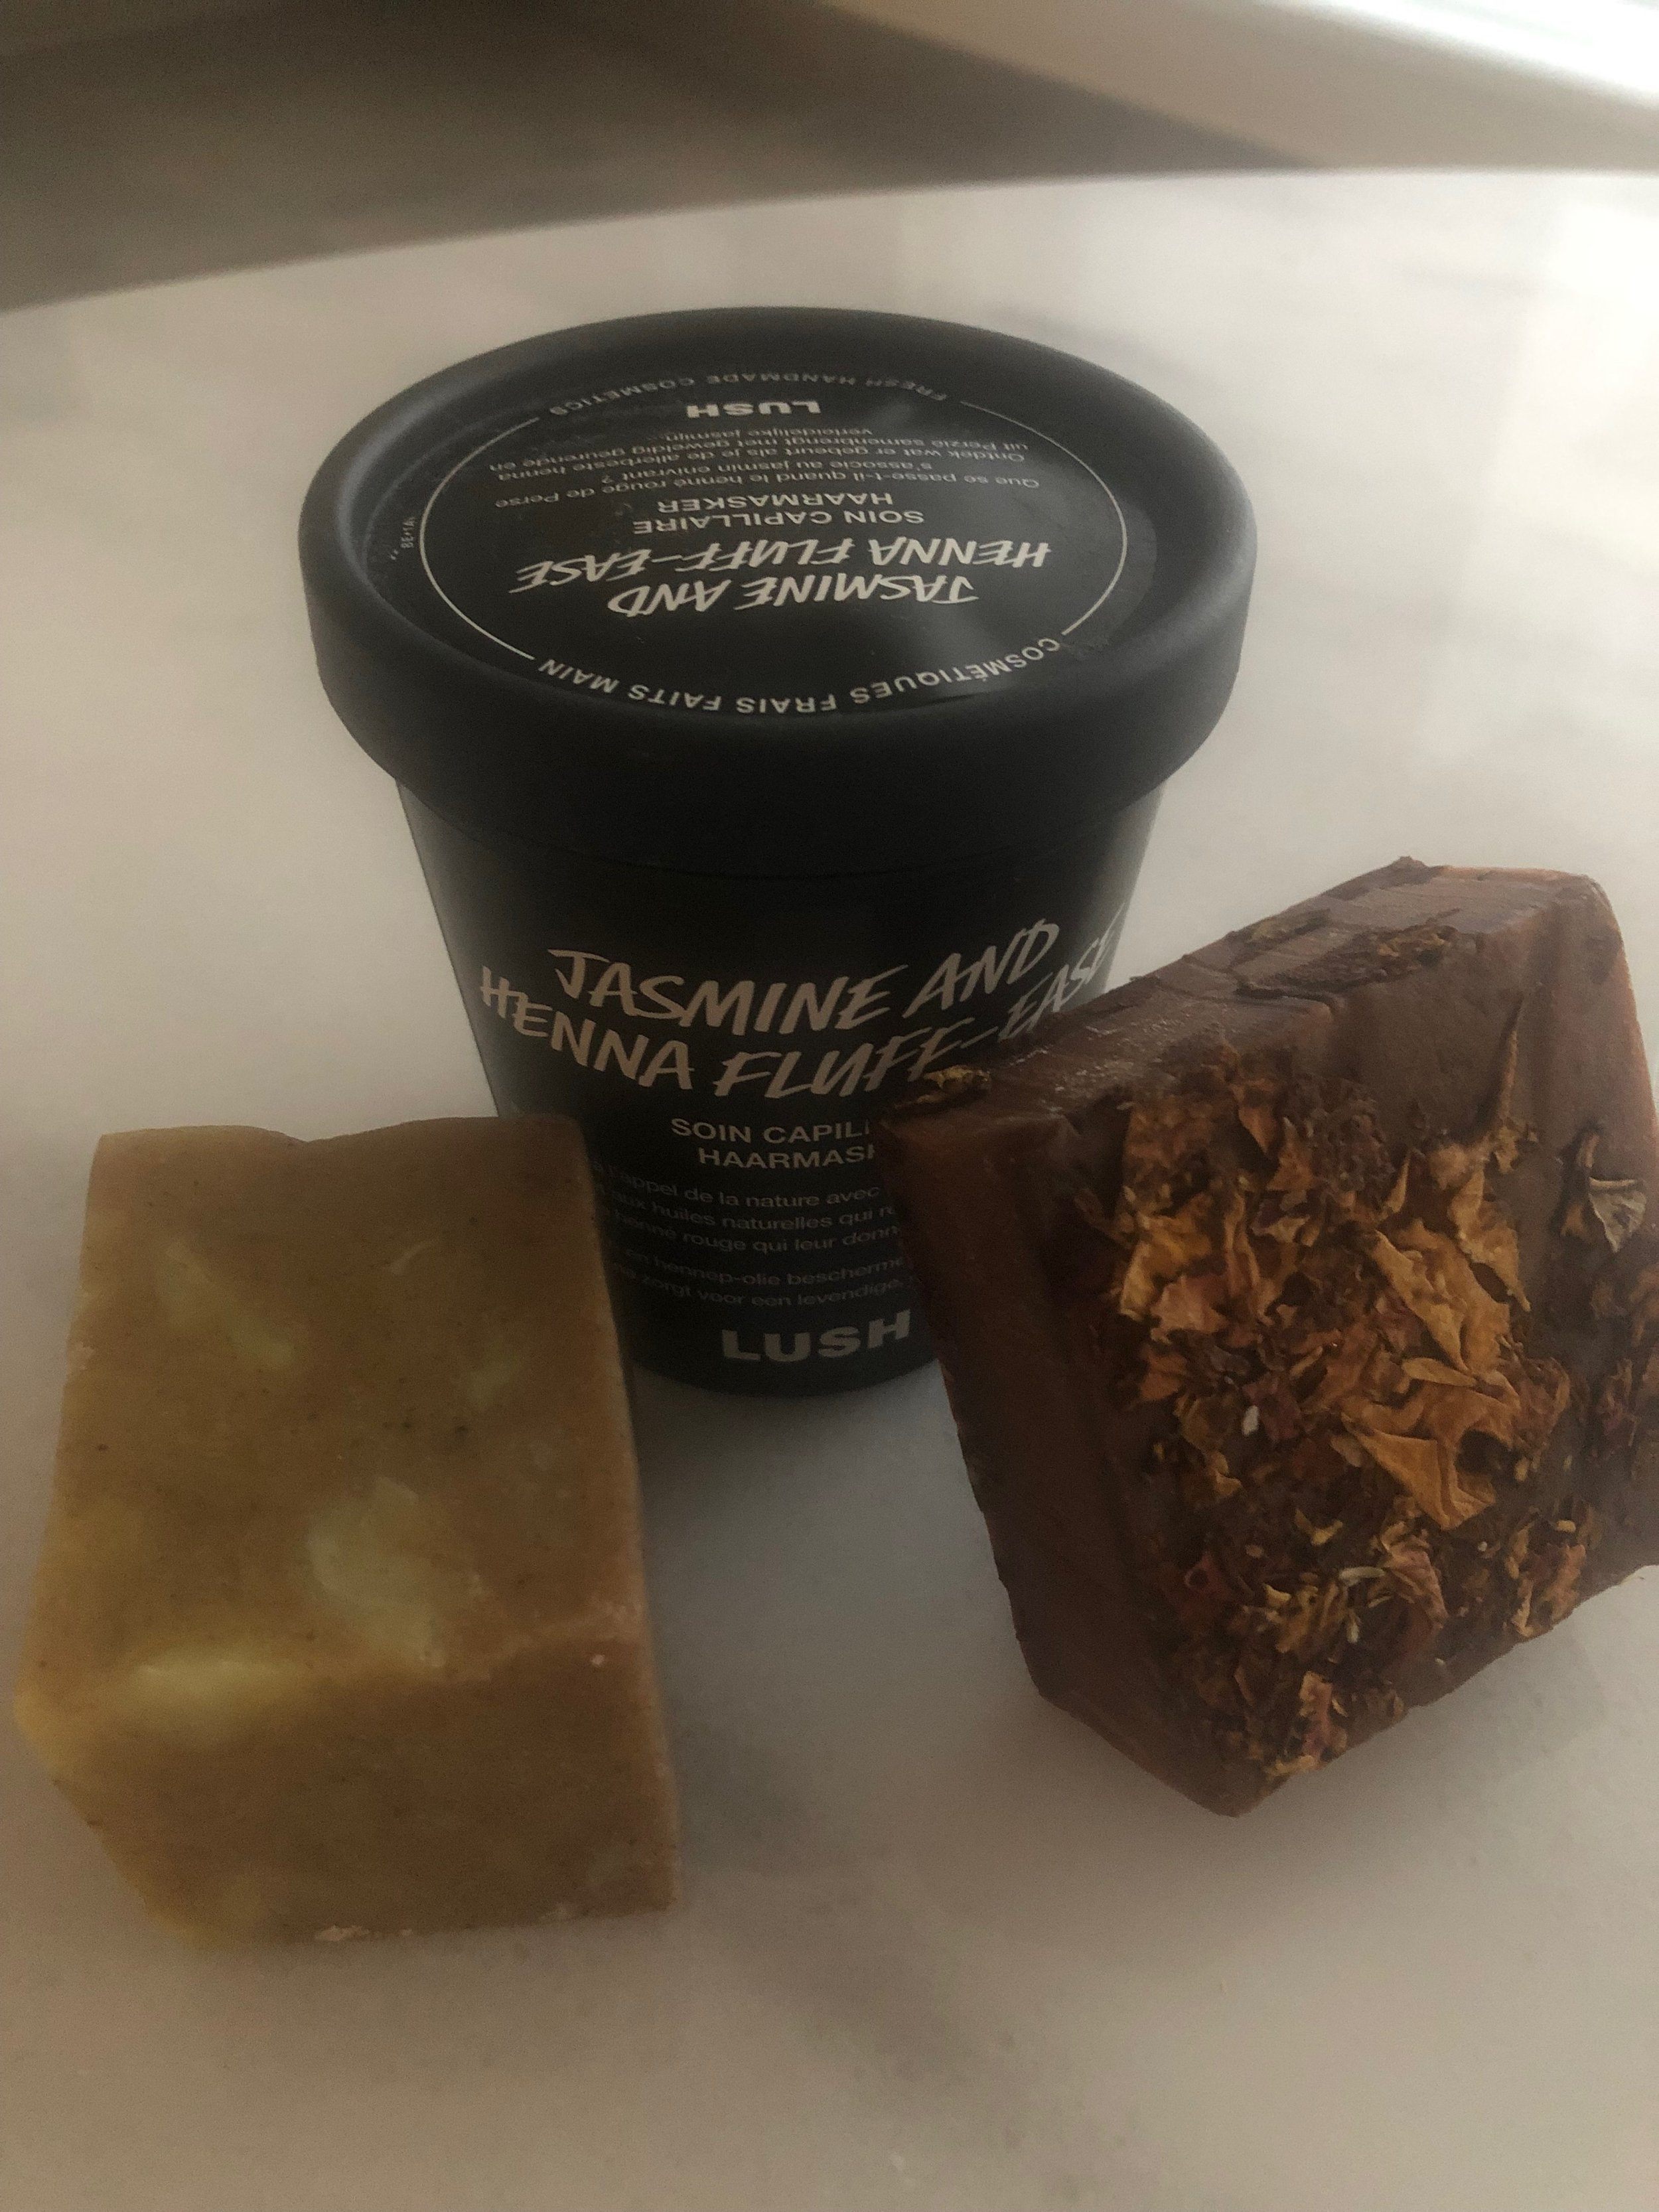 Lush soaps and hair mask